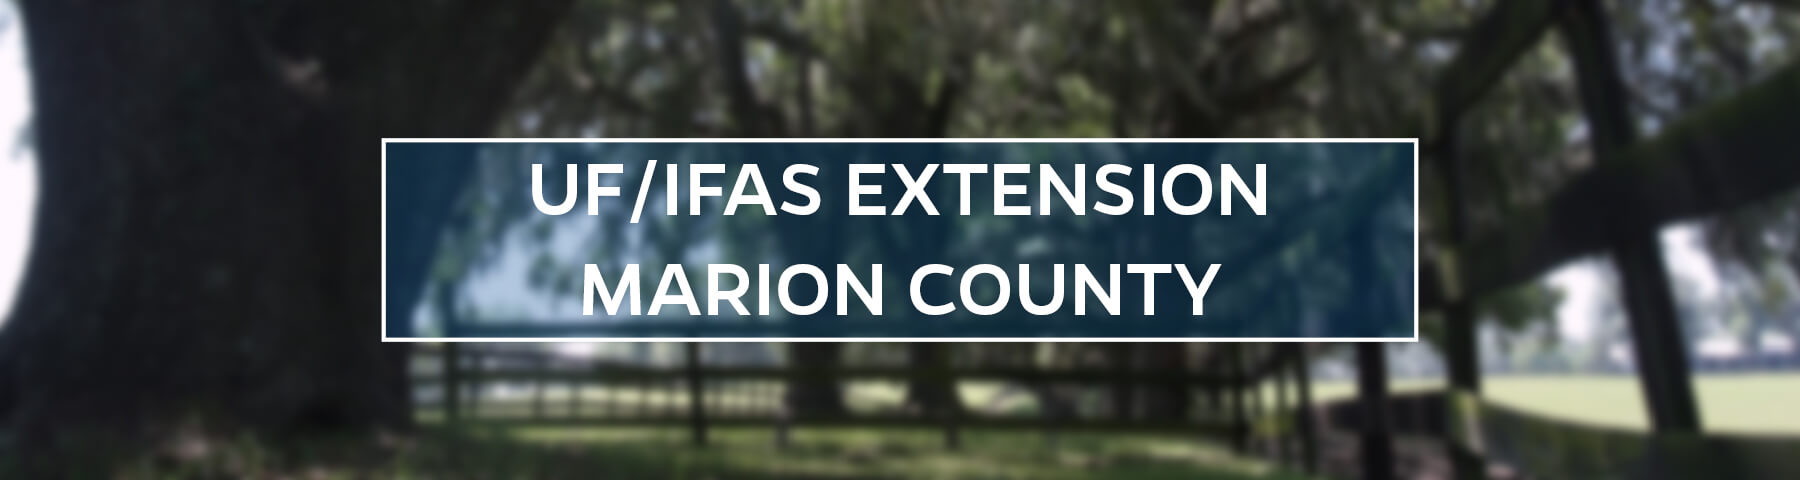 UF/IFAS Extension Marion County